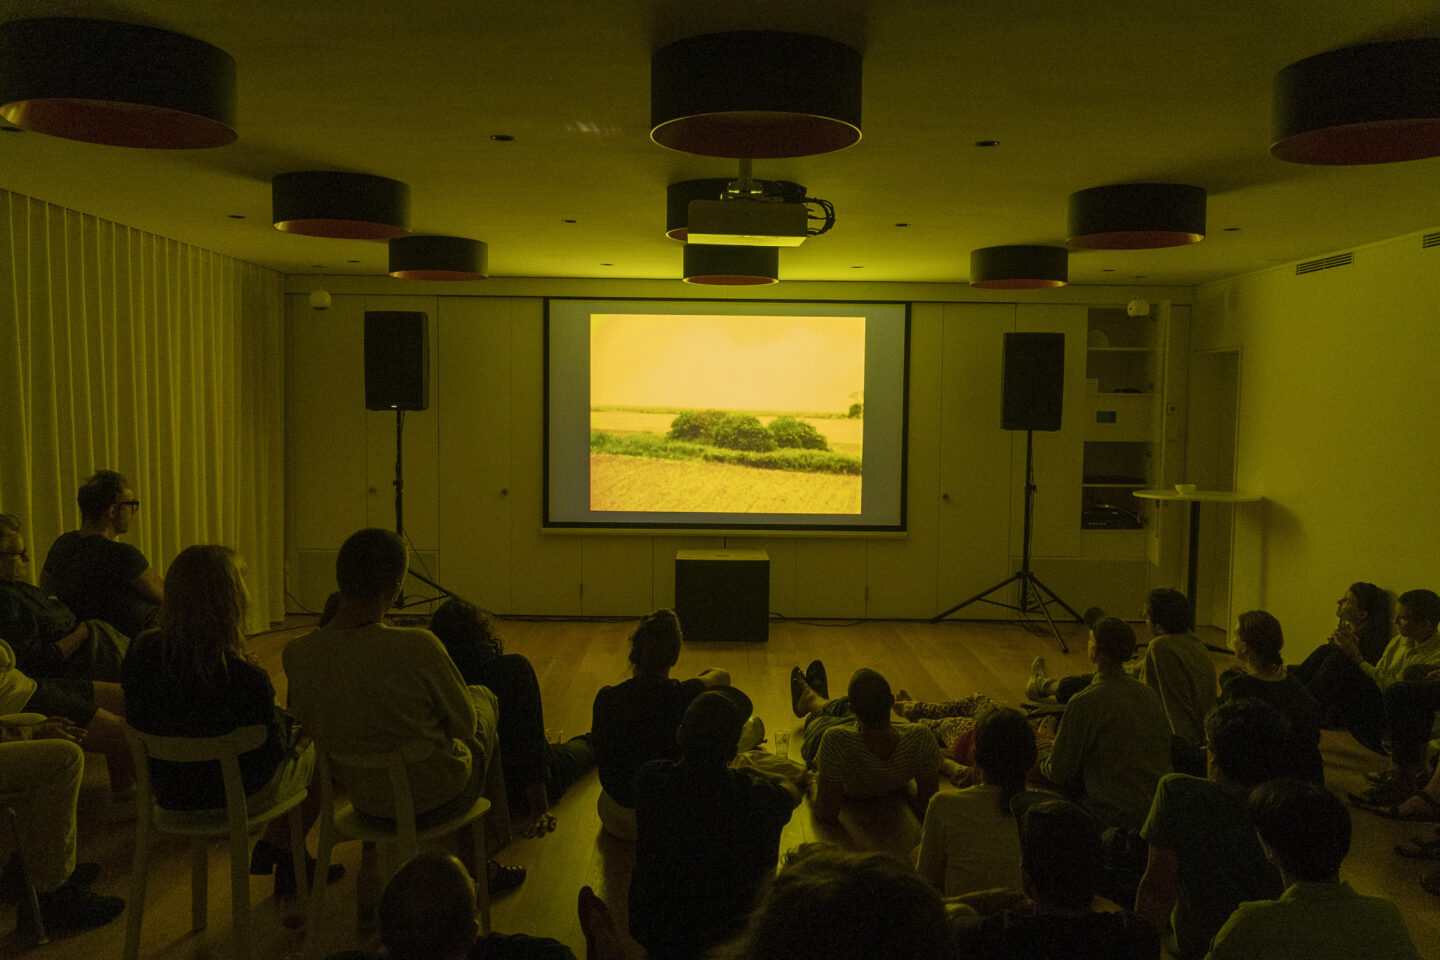 Exhibition View Groupshow «Modern Nature – an hommage to Derek Jarman; view on Simon Fisher Turner performing live score on Derek Jarman's Blue and a selection of super-8 movies, 2019» at La Becque, La Tour-de-Peilz, 2019 / Photo: © Julien Gremaud / Courtesy: the artist and La Becque©